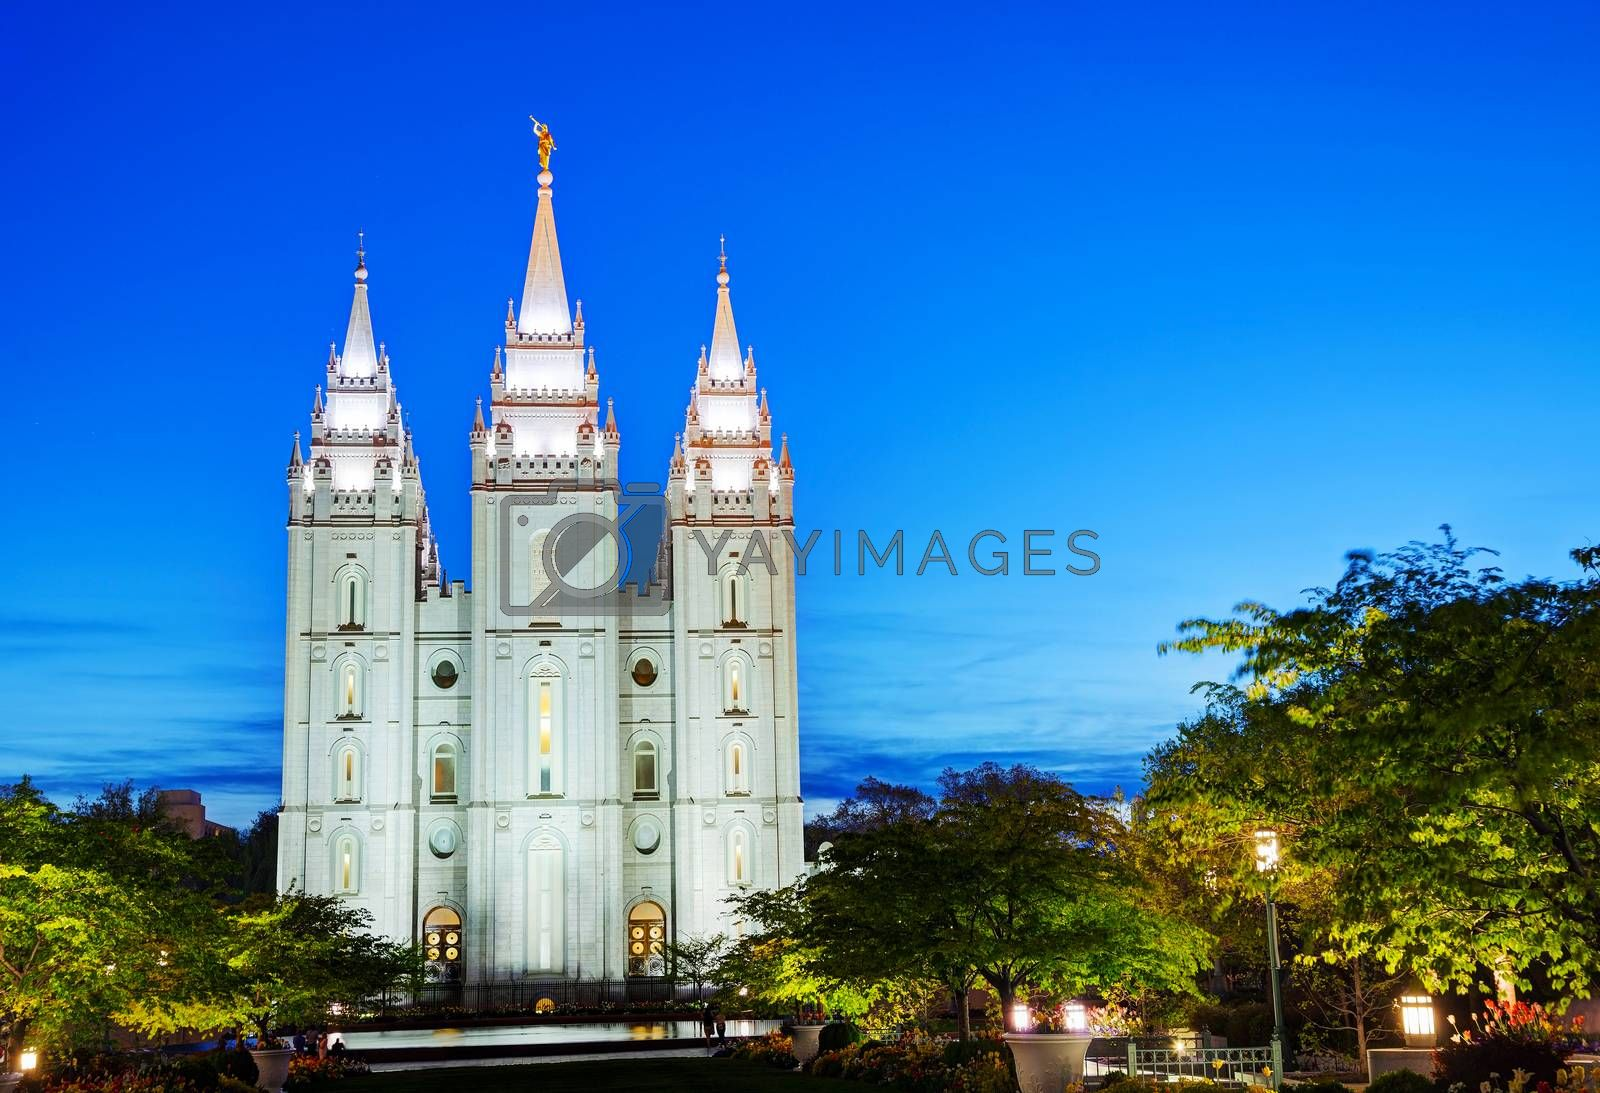 Royalty free image of Mormons' Temple in Salt Lake City, UT by AndreyKr